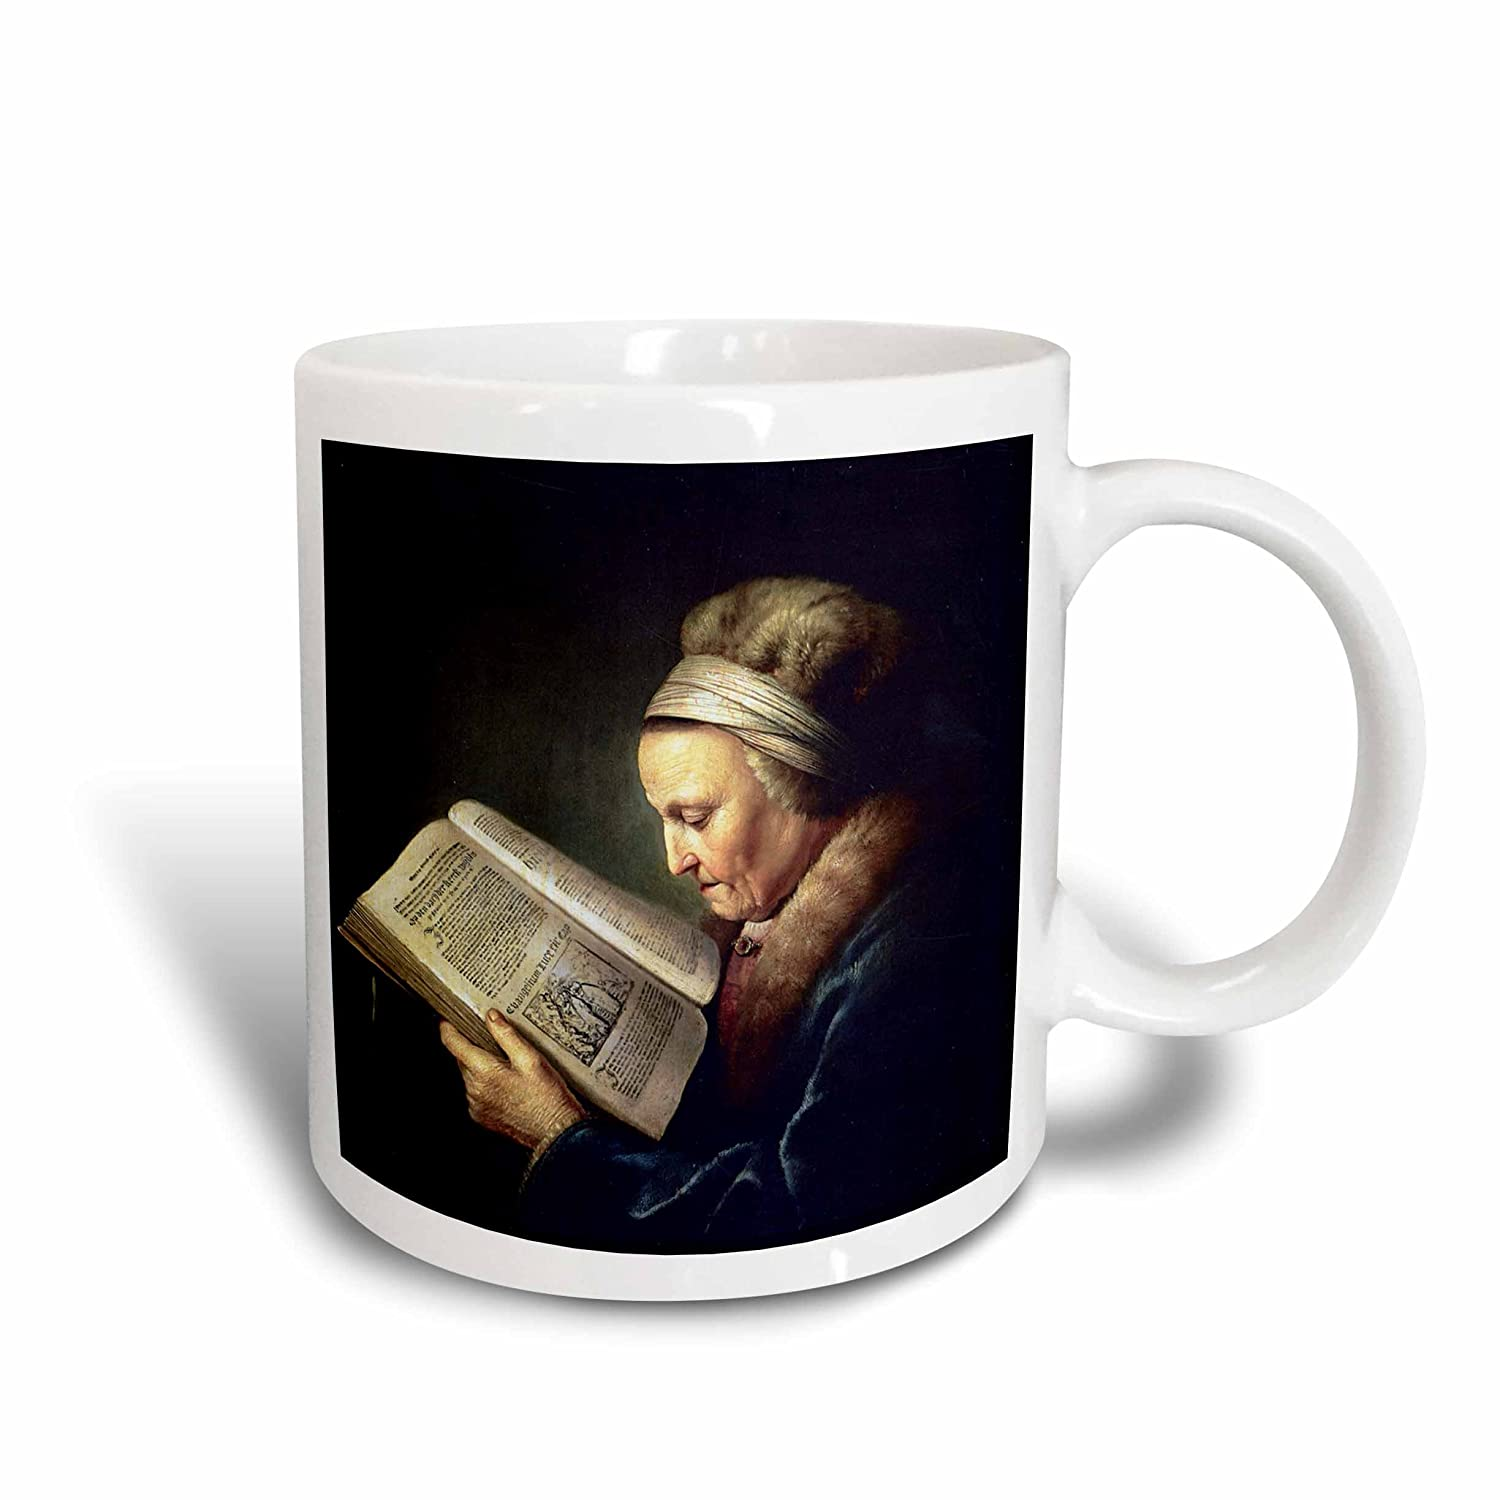 3dRose 170912/_2 Old Woman Reading A Lectionary Rembrandts Mother C 1630 By Gerard Dou Ceramic Mug 15 oz